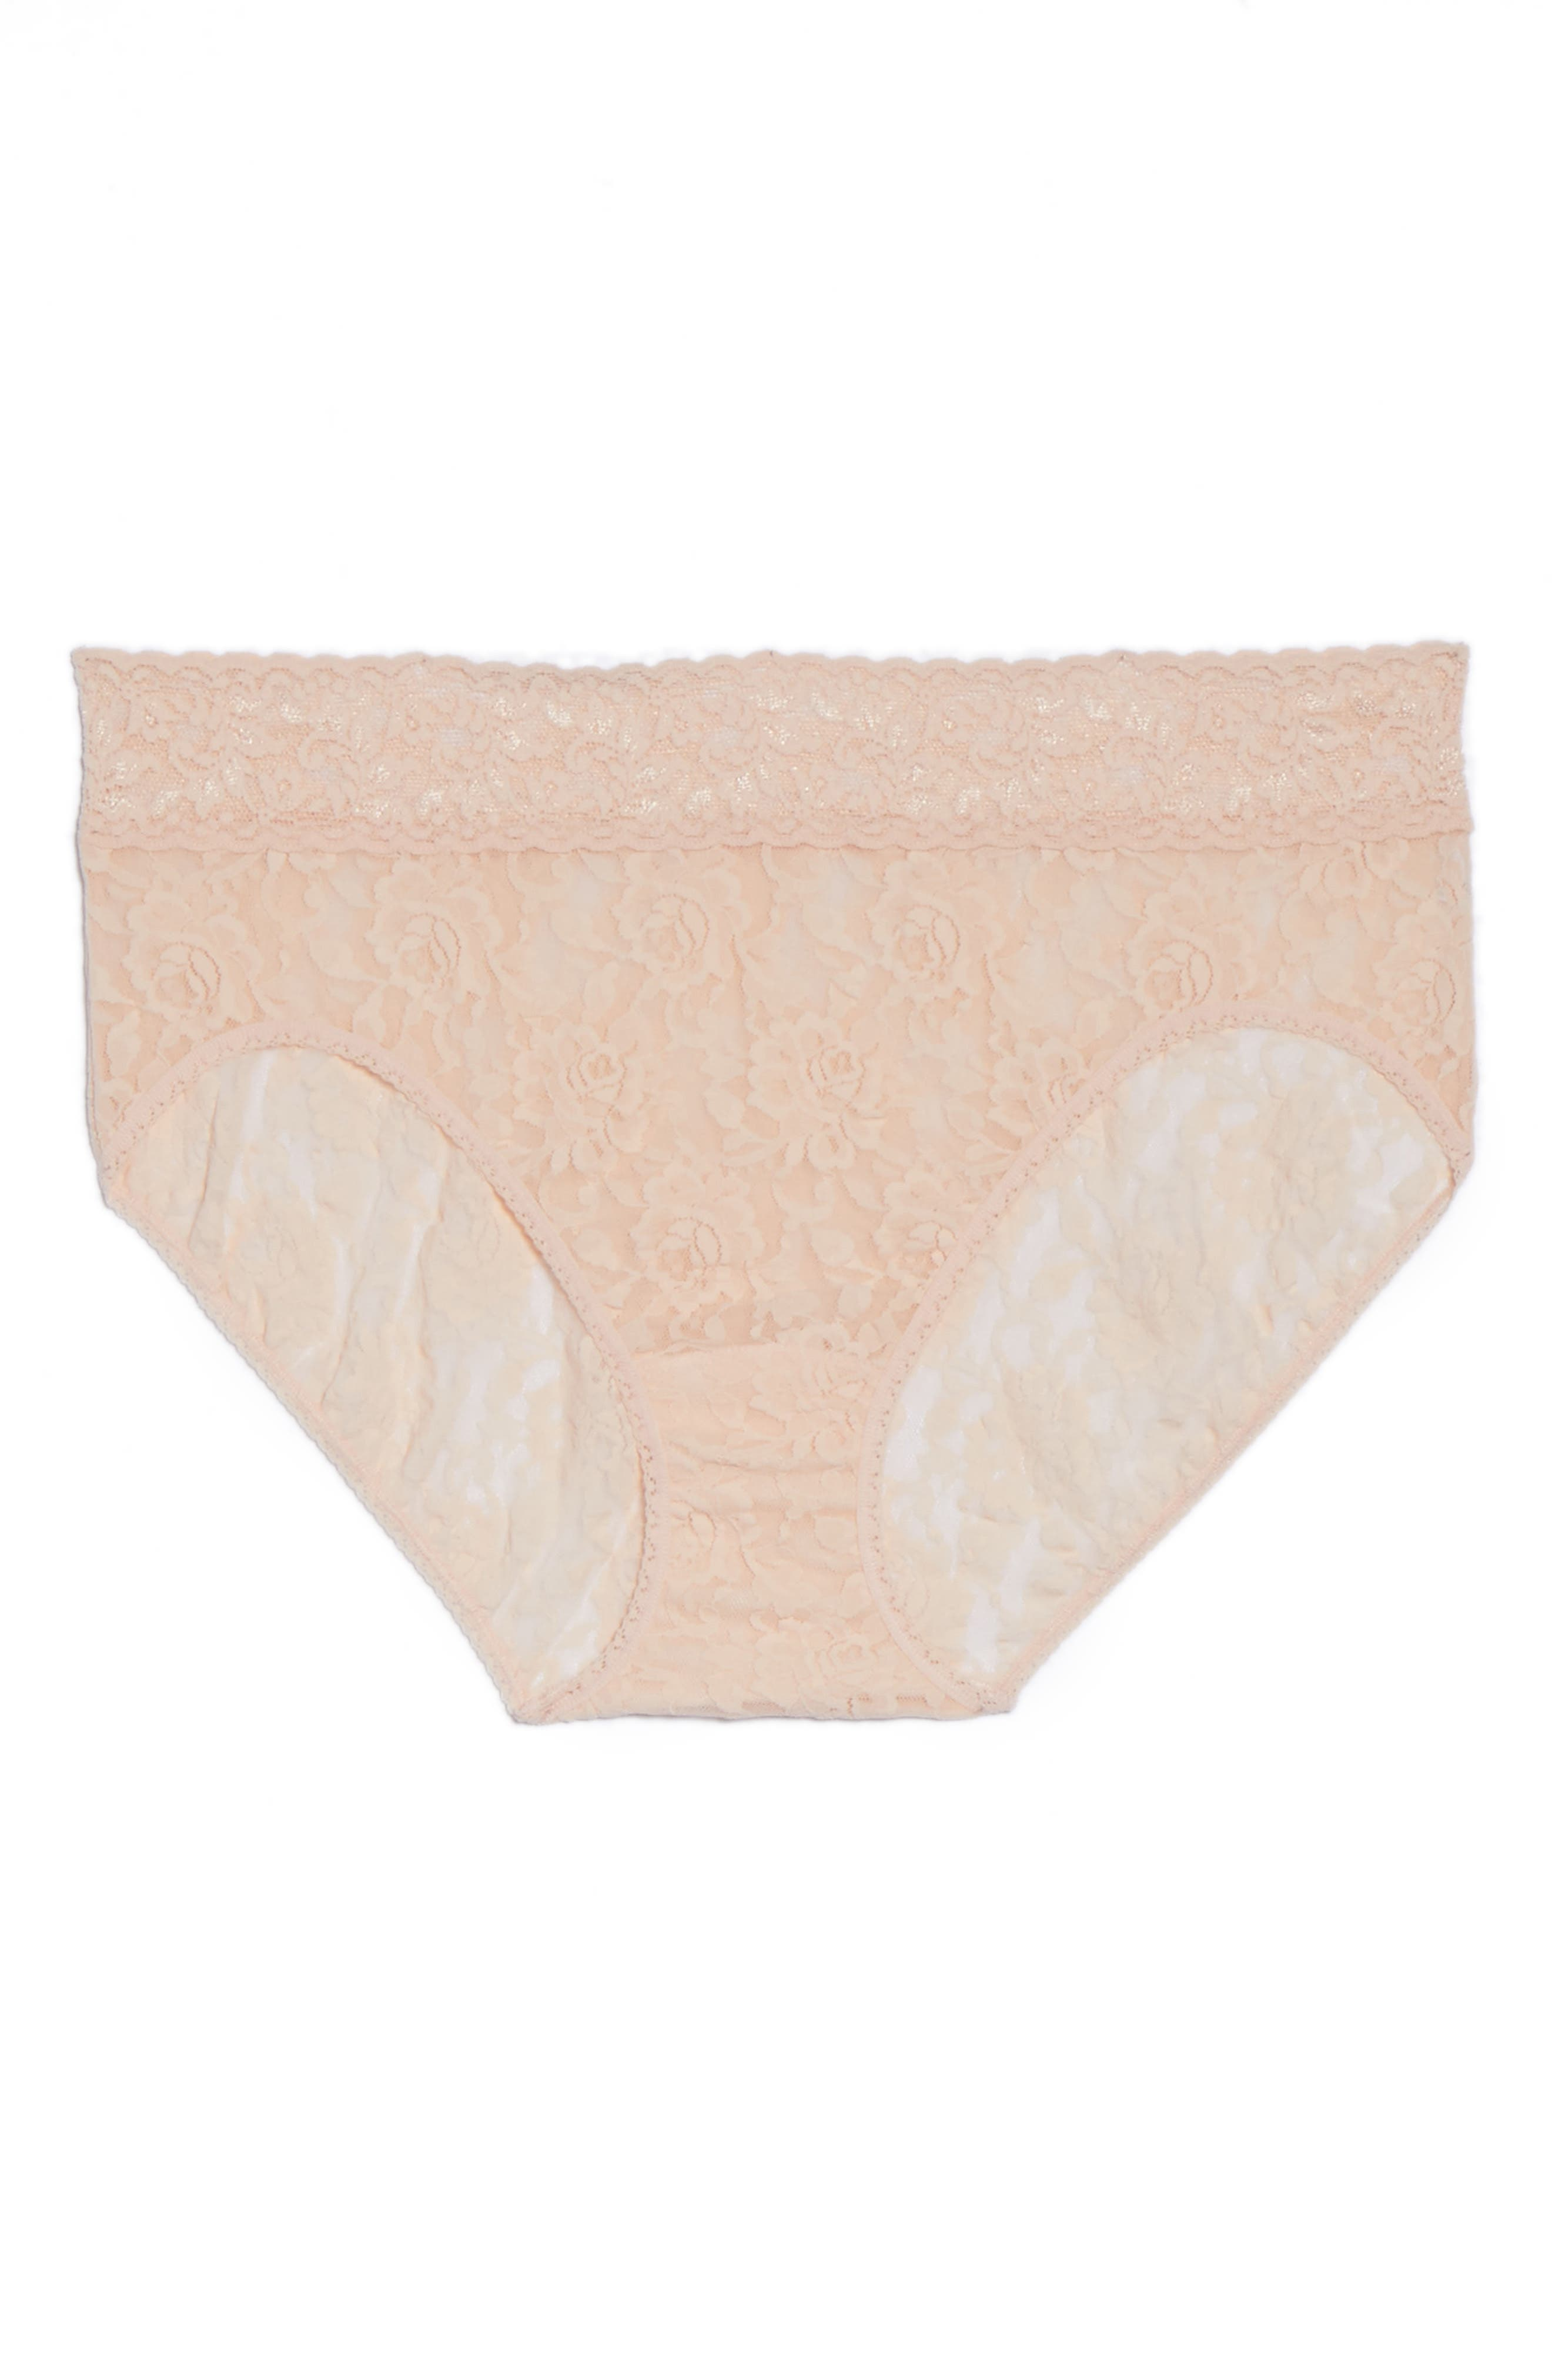 French Briefs,                             Alternate thumbnail 107, color,